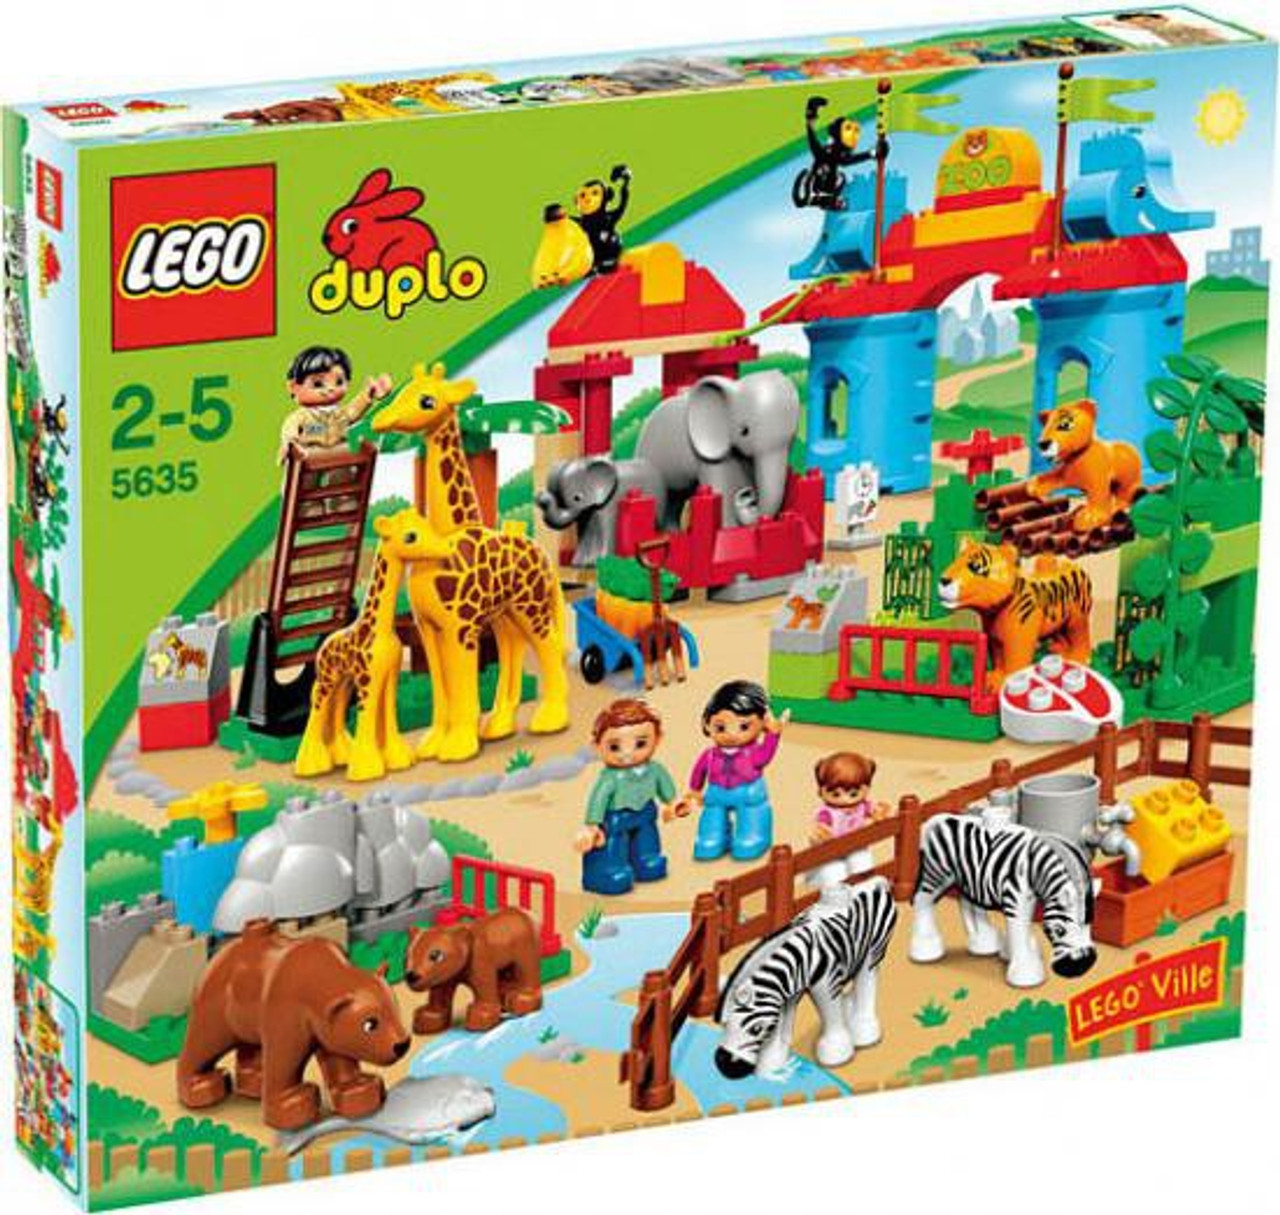 Duplo Lego Ville Big City Zoo Set #5635